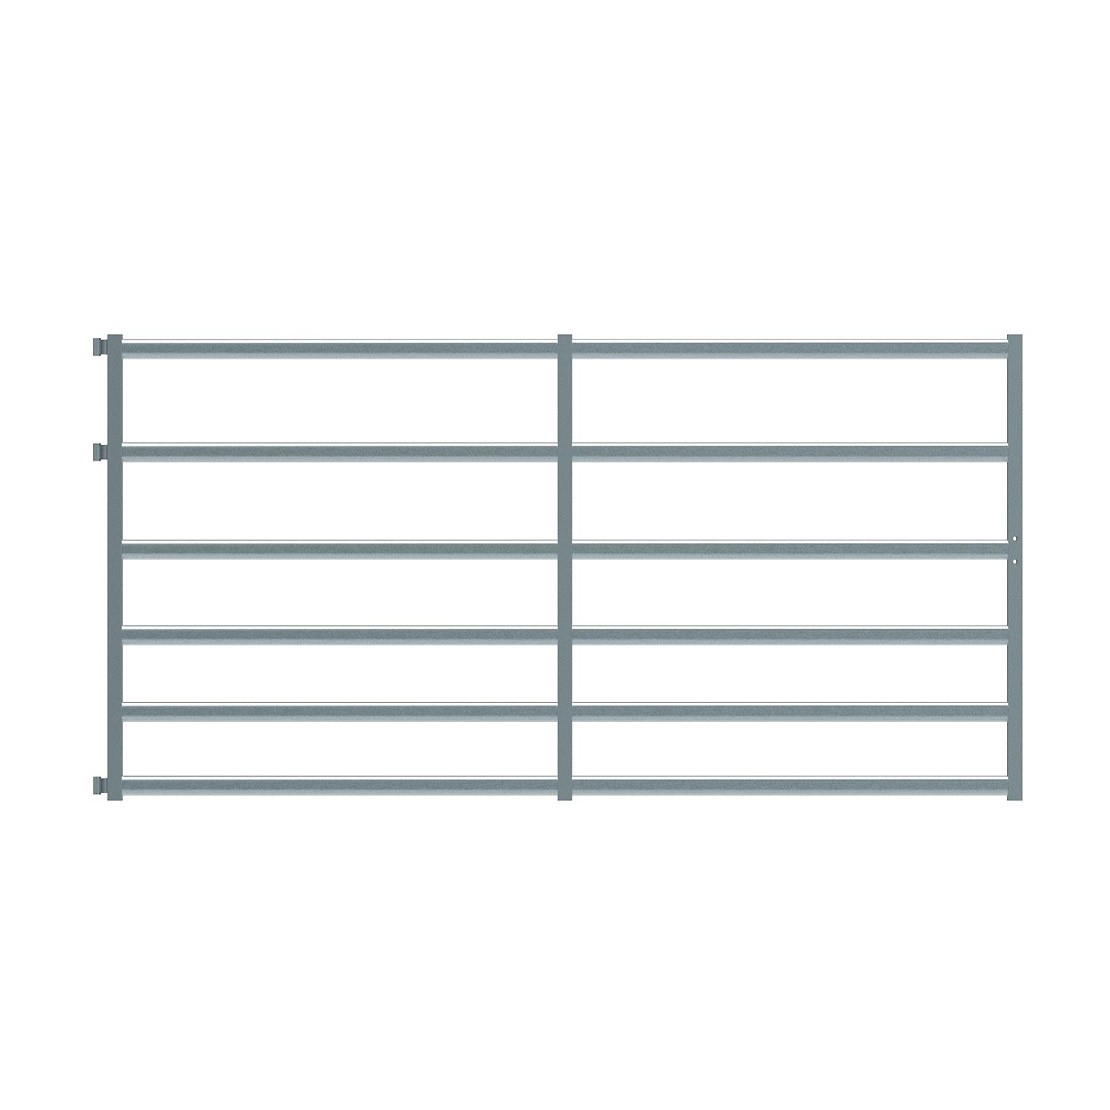 Cattle Gate 6 Rail (3100mm x 1580mm High)